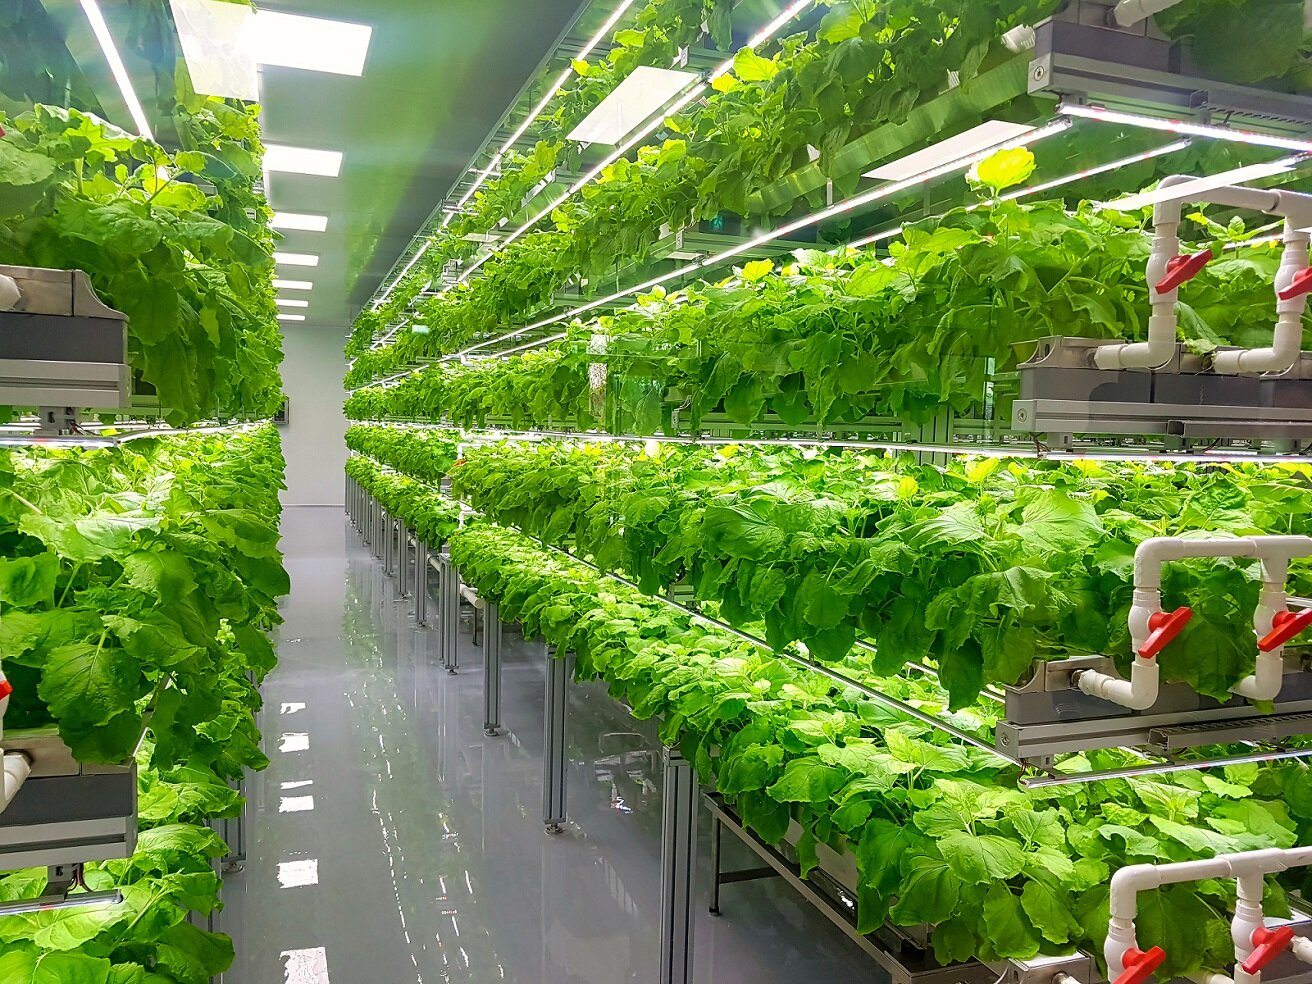 The future of agriculture: new high-tech vertical farm is capable of producing 10x more seed potatoes